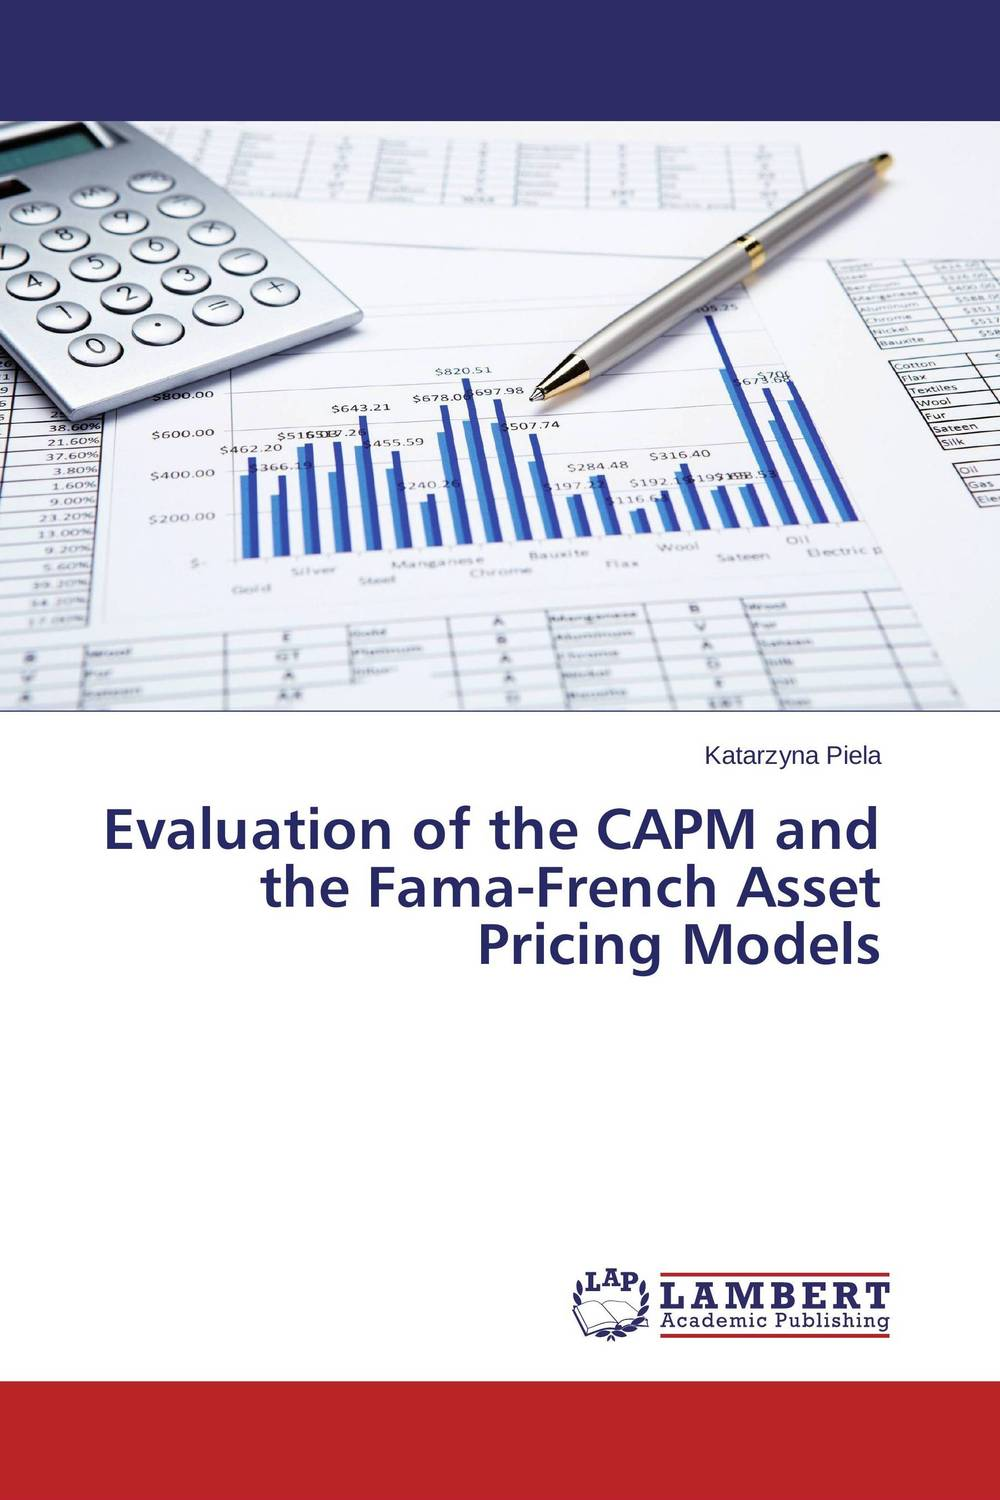 Evaluation of the CAPM and the Fama-French Asset Pricing Models